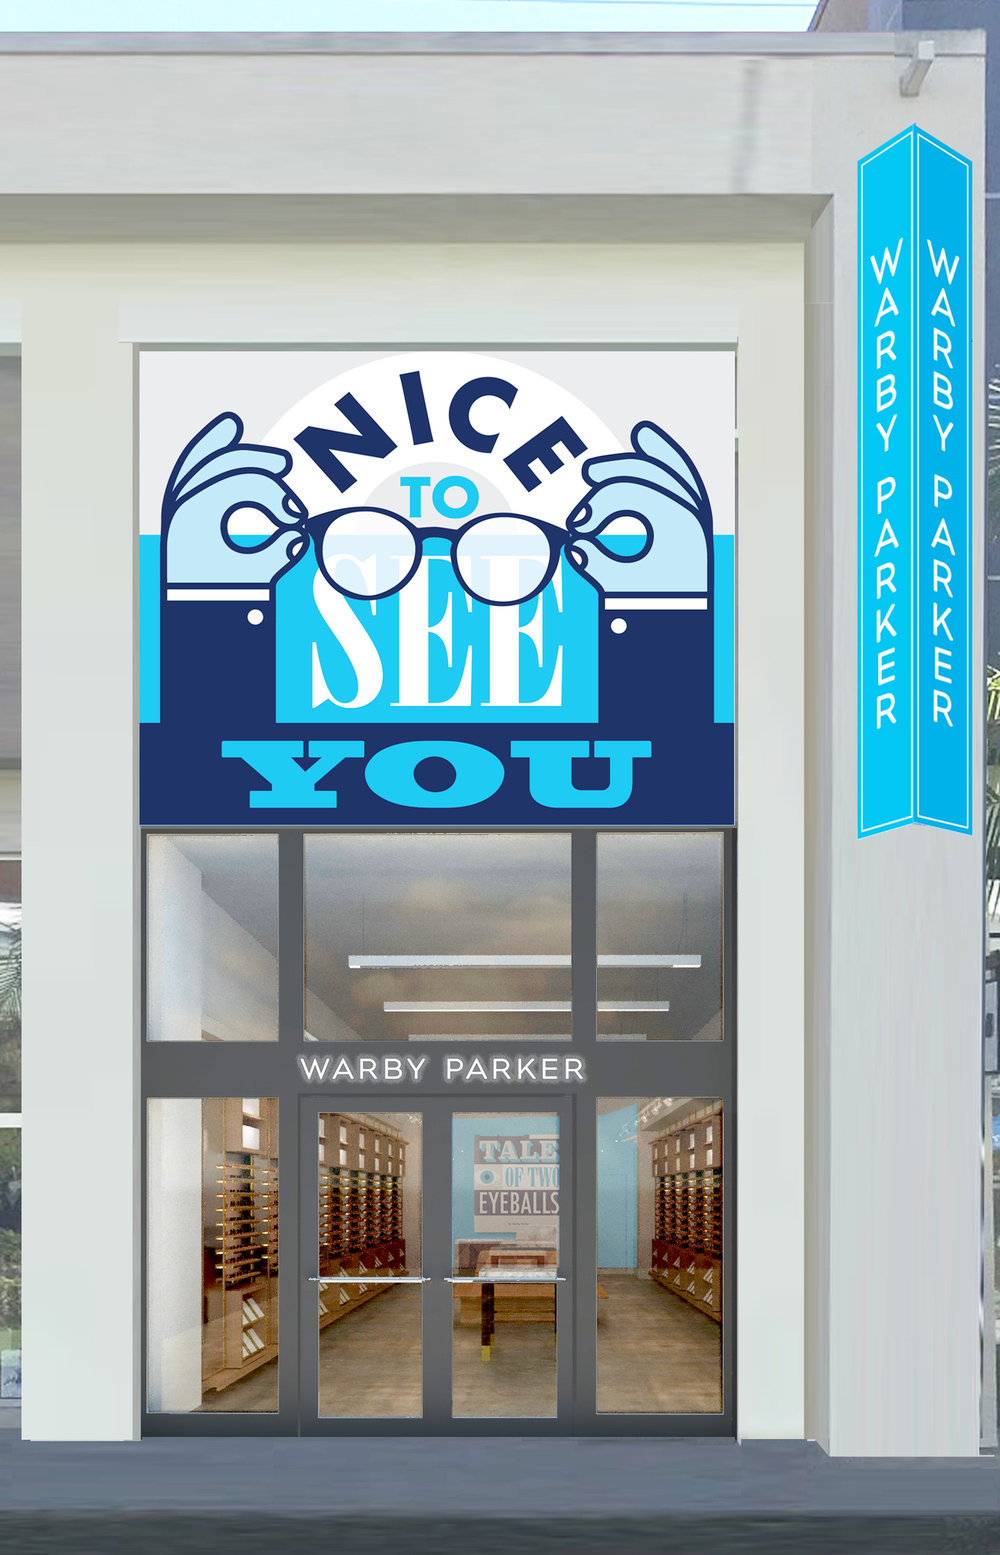 Photo Courtesy of Warby Parker